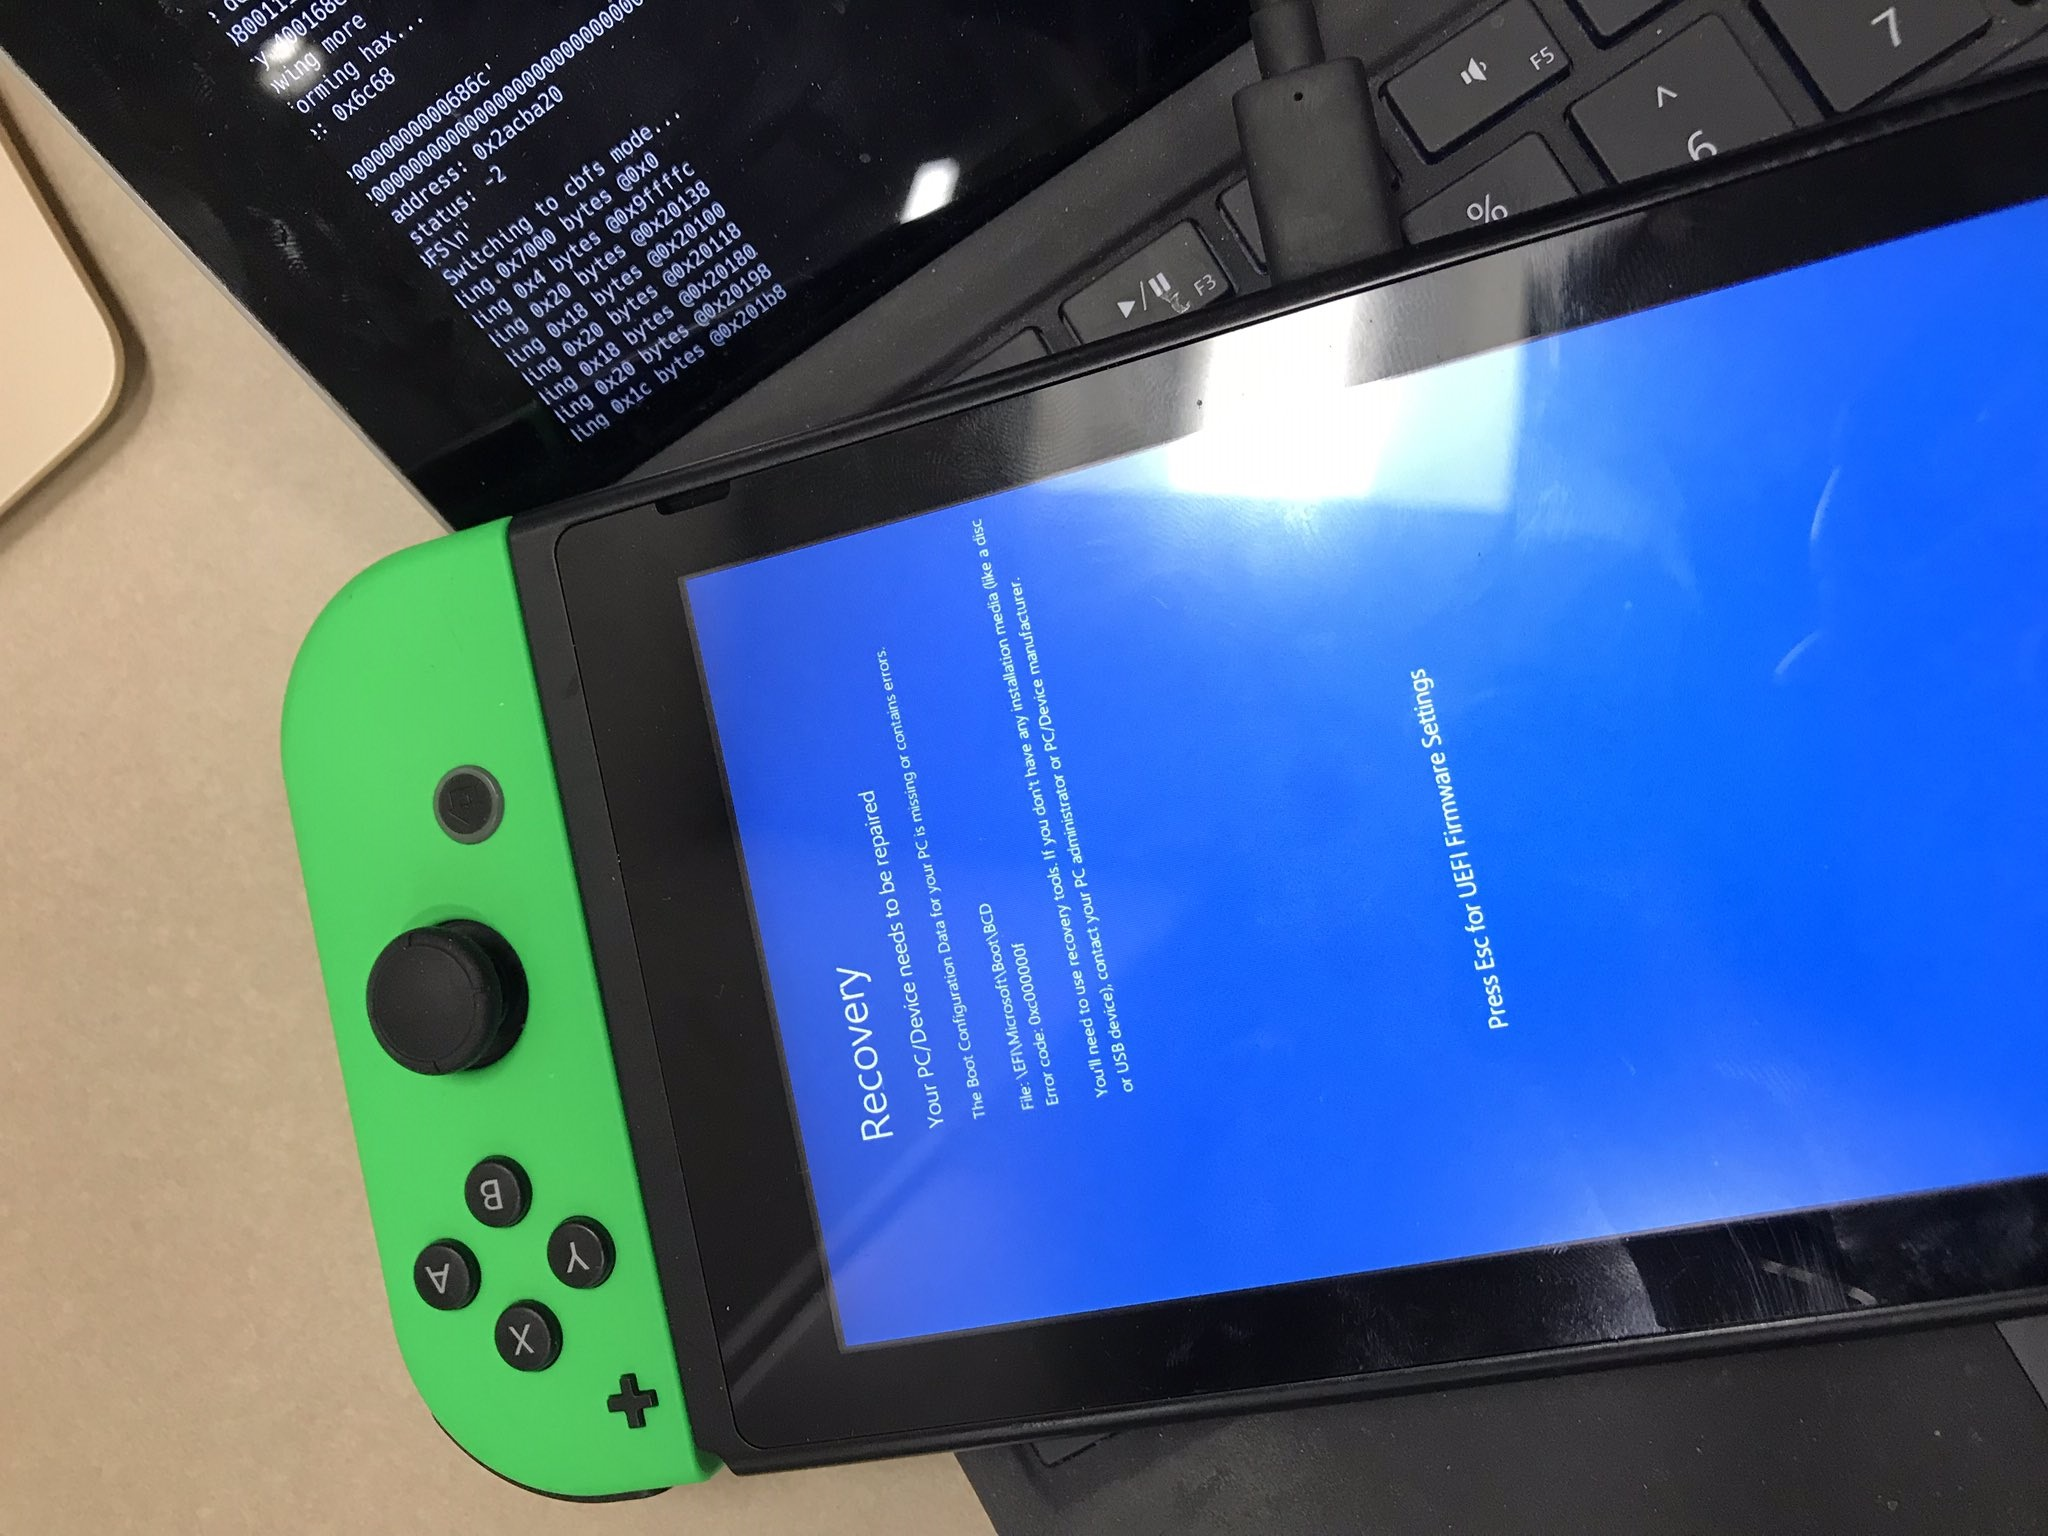 Windows 10 en la Nintendo Switch podría ser una realidad en breve